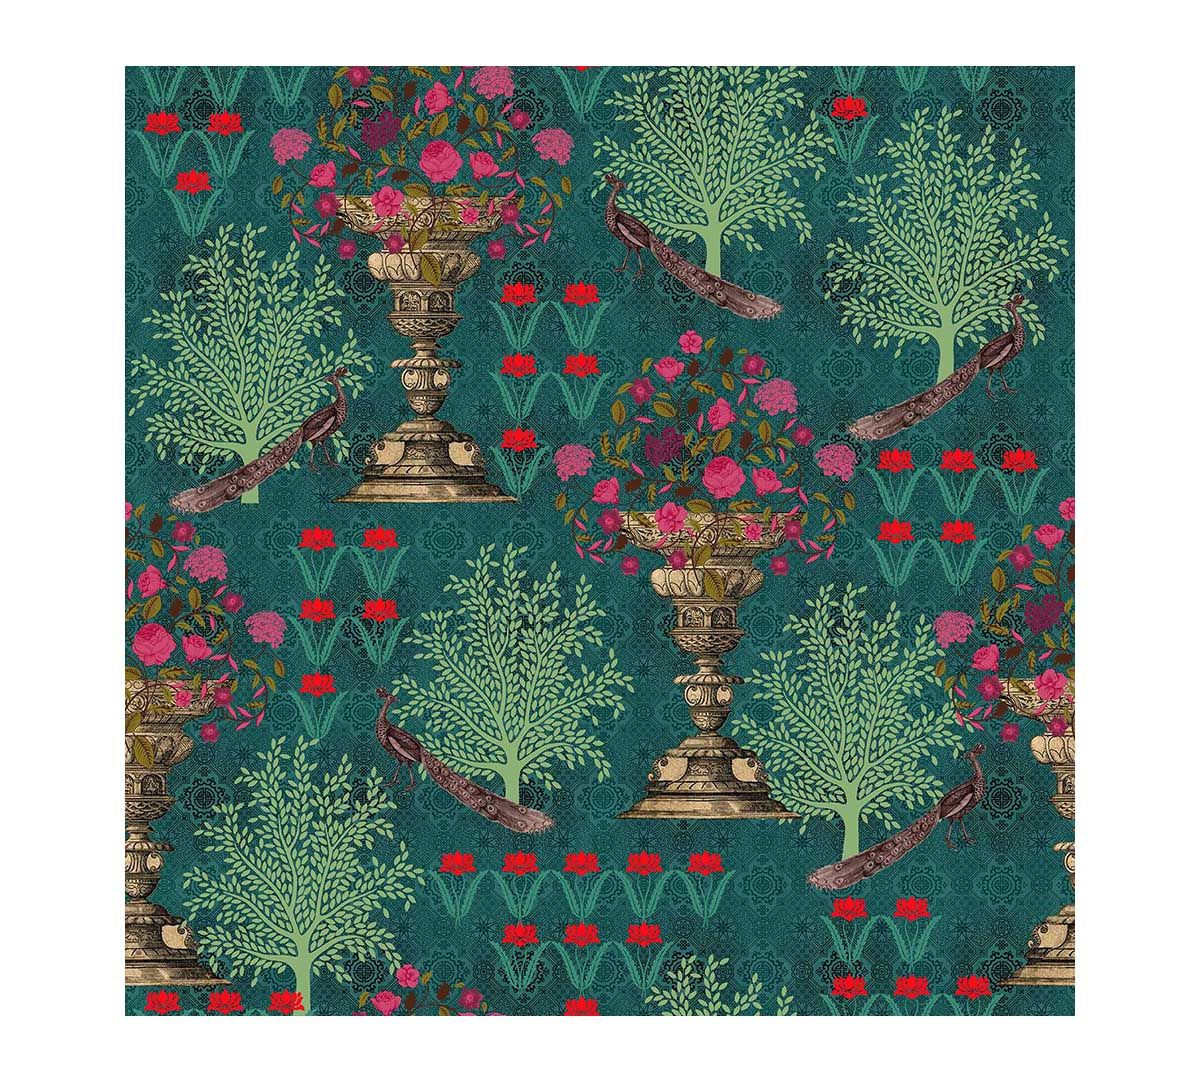 India Circus Flora Crest of the High Flower Wallpaper